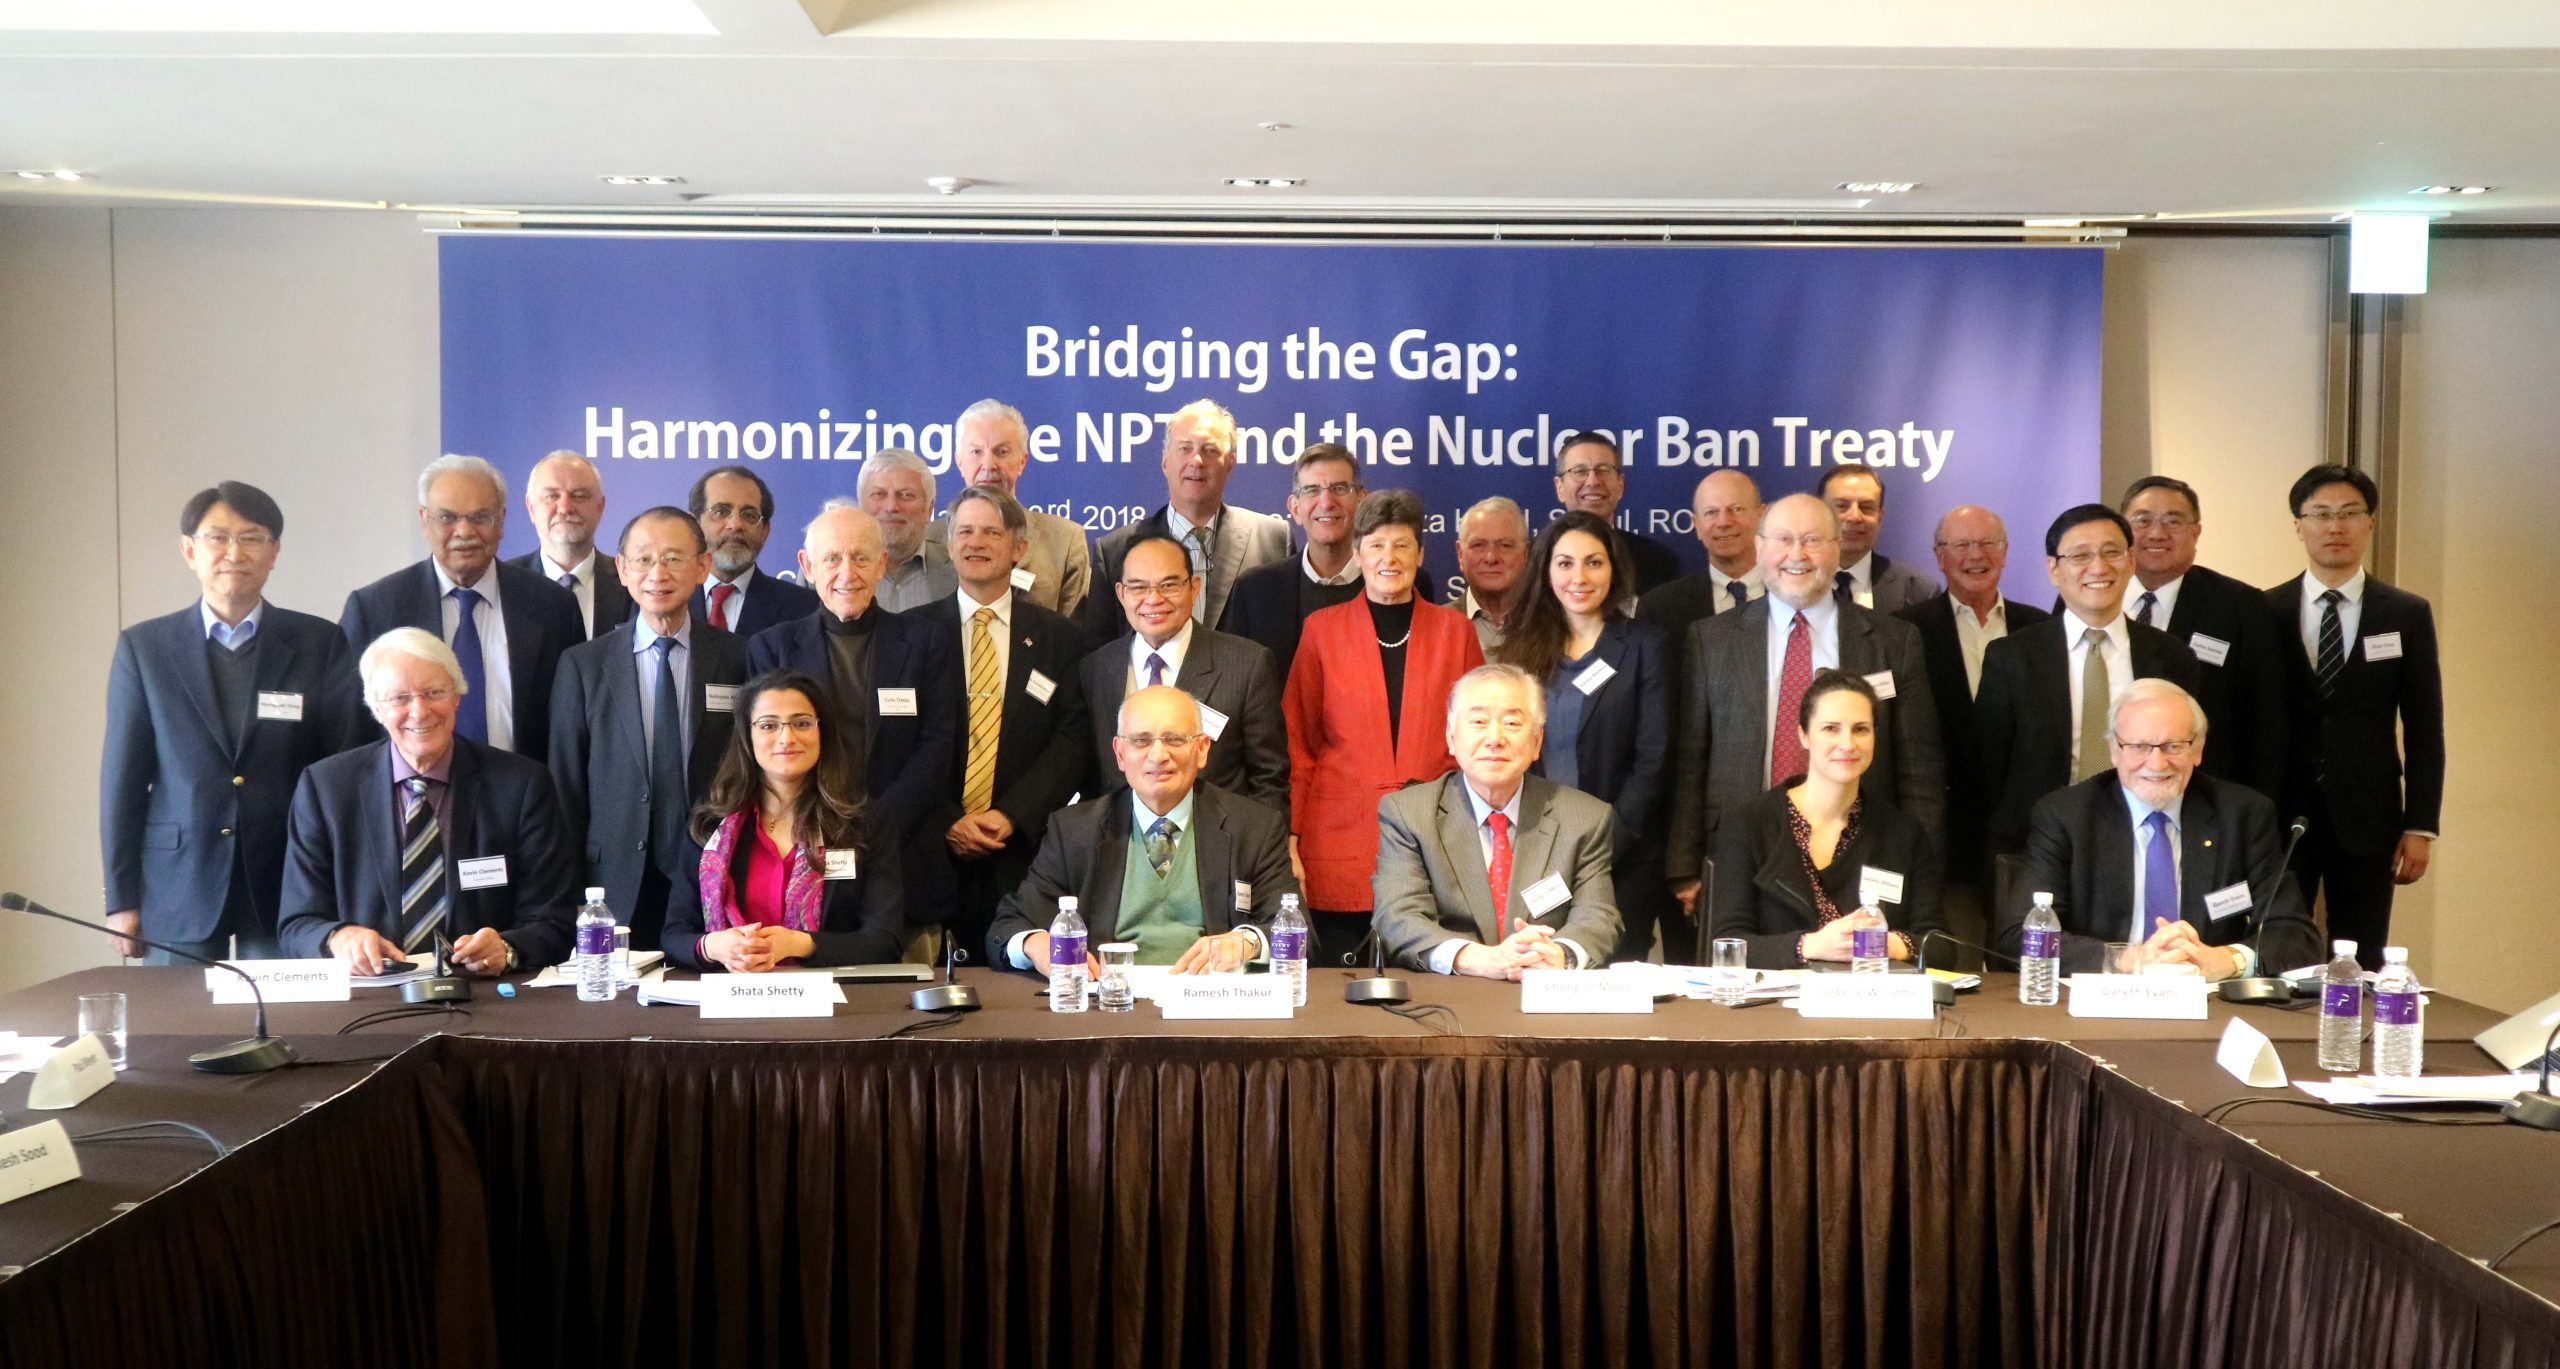 [Workshop] Closing the Gap: Harmonizing the NPT and the Nuclear Ban Treaty